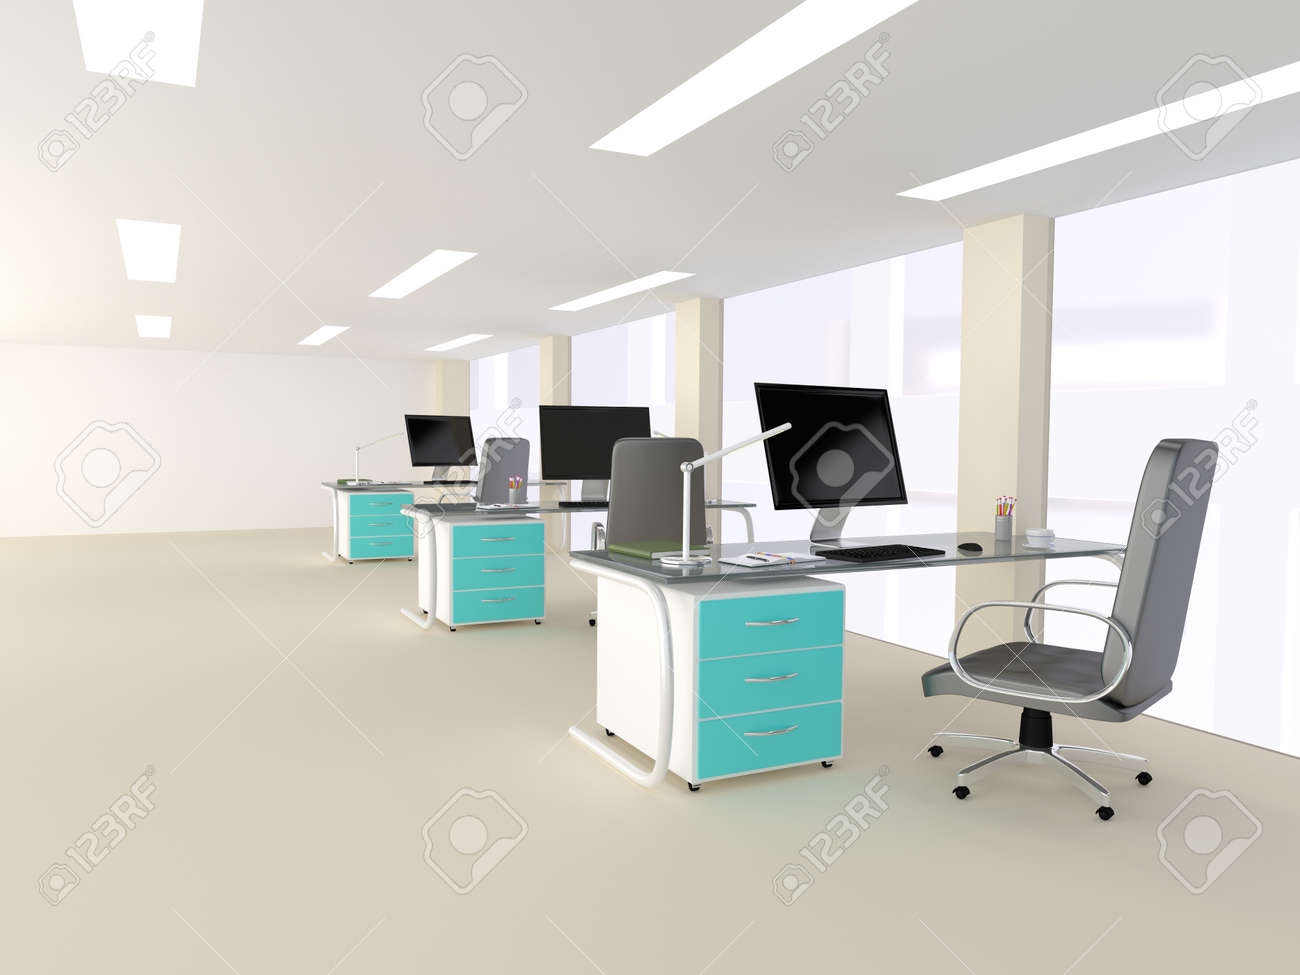 modern minimalist office. Interior Of A Bright White Modern Minimalist Office With Three Identical Workstations Turquoise Highlights 2